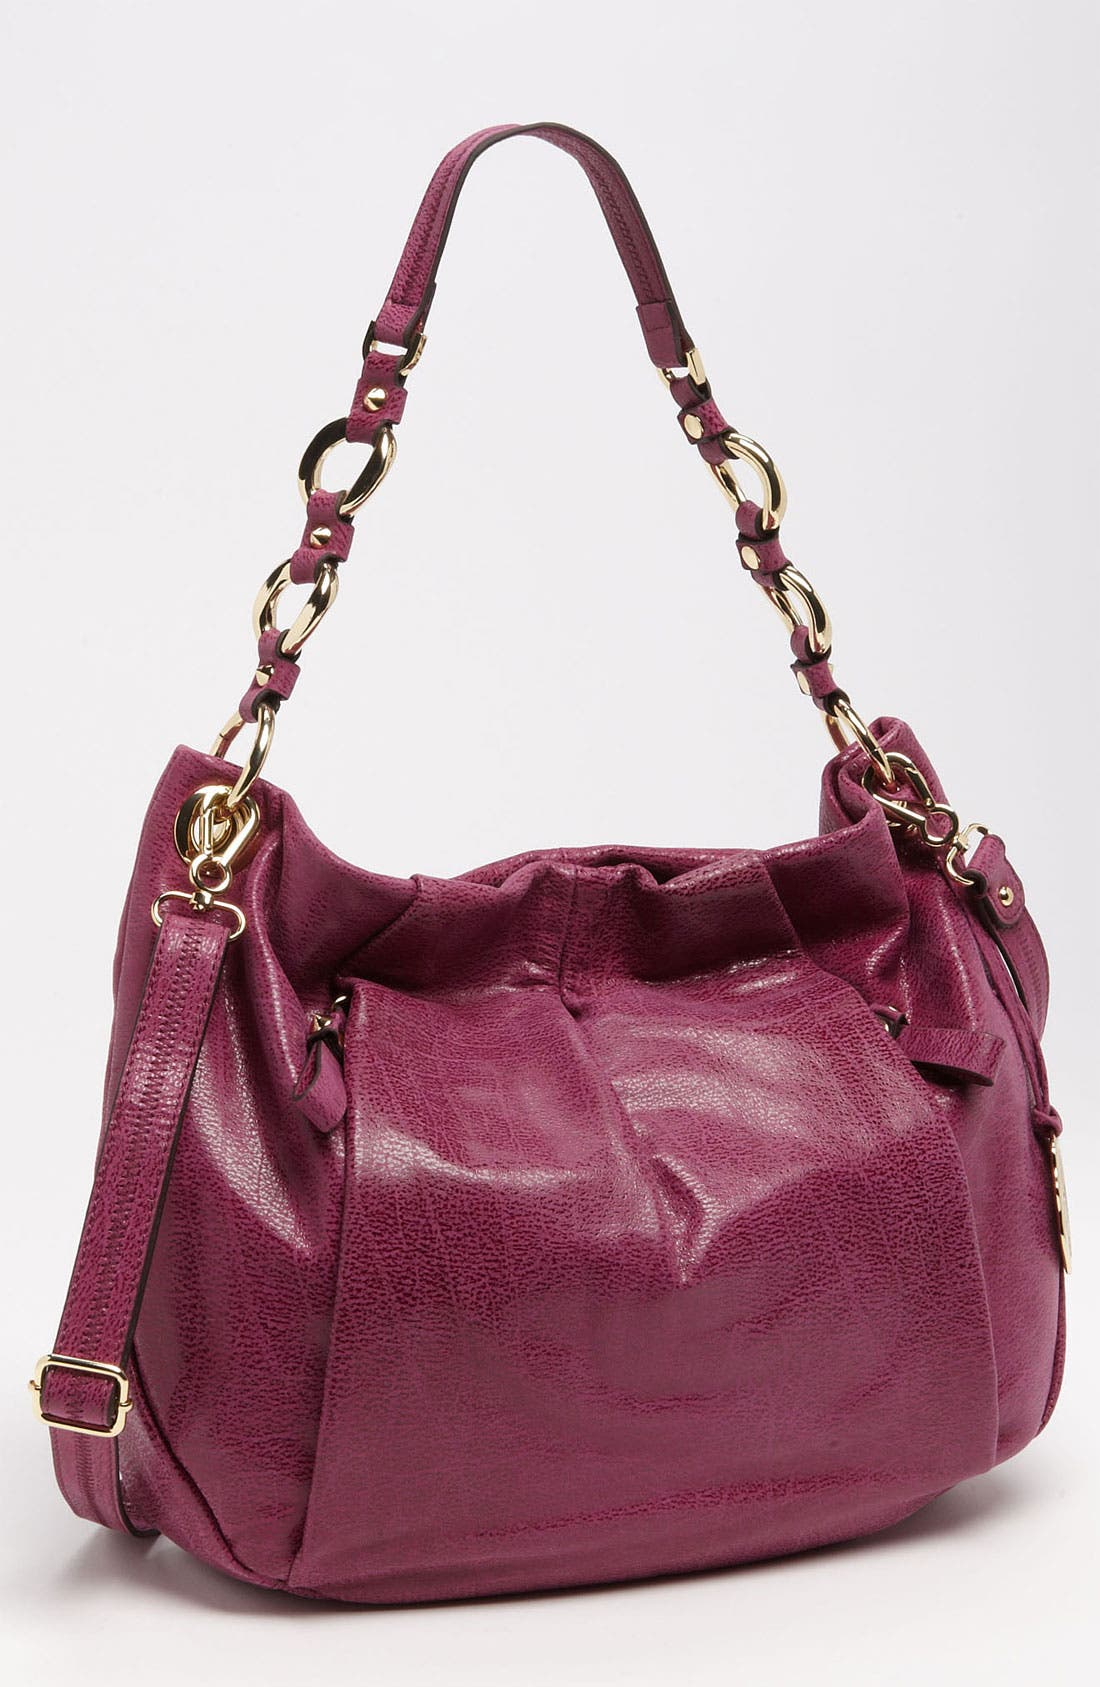 Alternate Image 1 Selected - Vince Camuto 'Cristina' Hobo